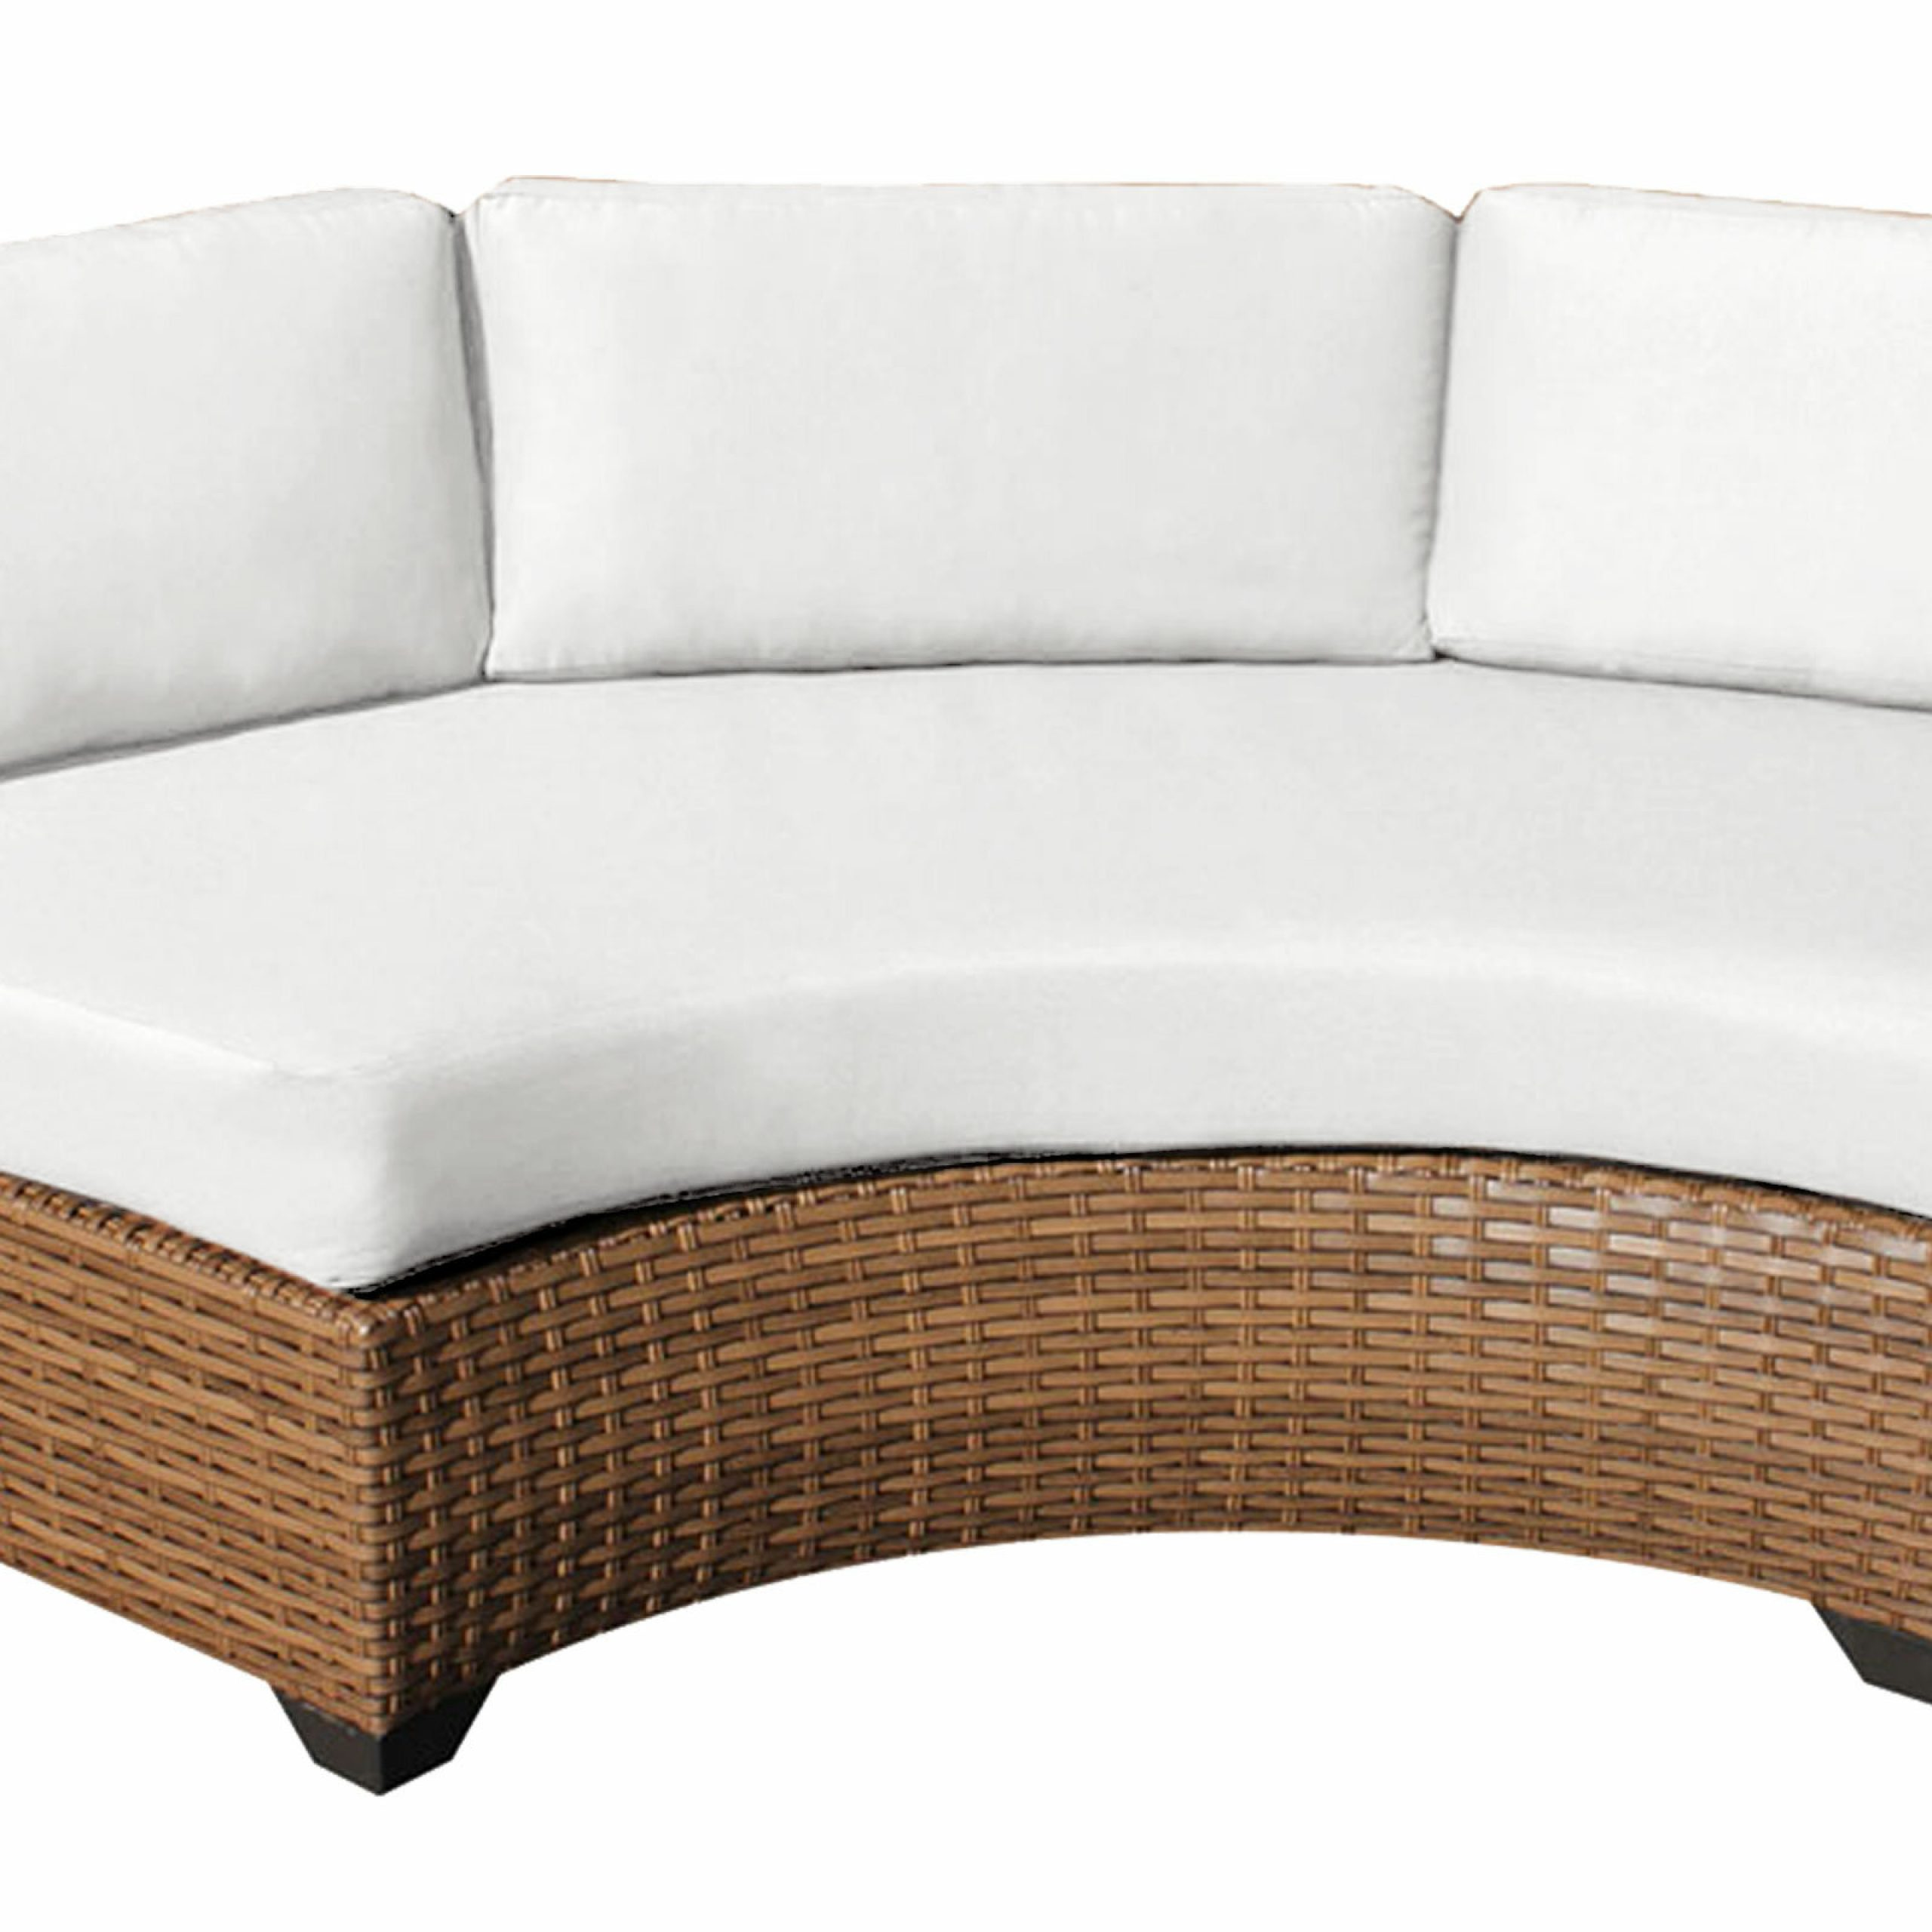 Repp Patio Sofas With Cushion Throughout Newest Waterbury Curved Armless Sofa With Cushions (View 16 of 25)